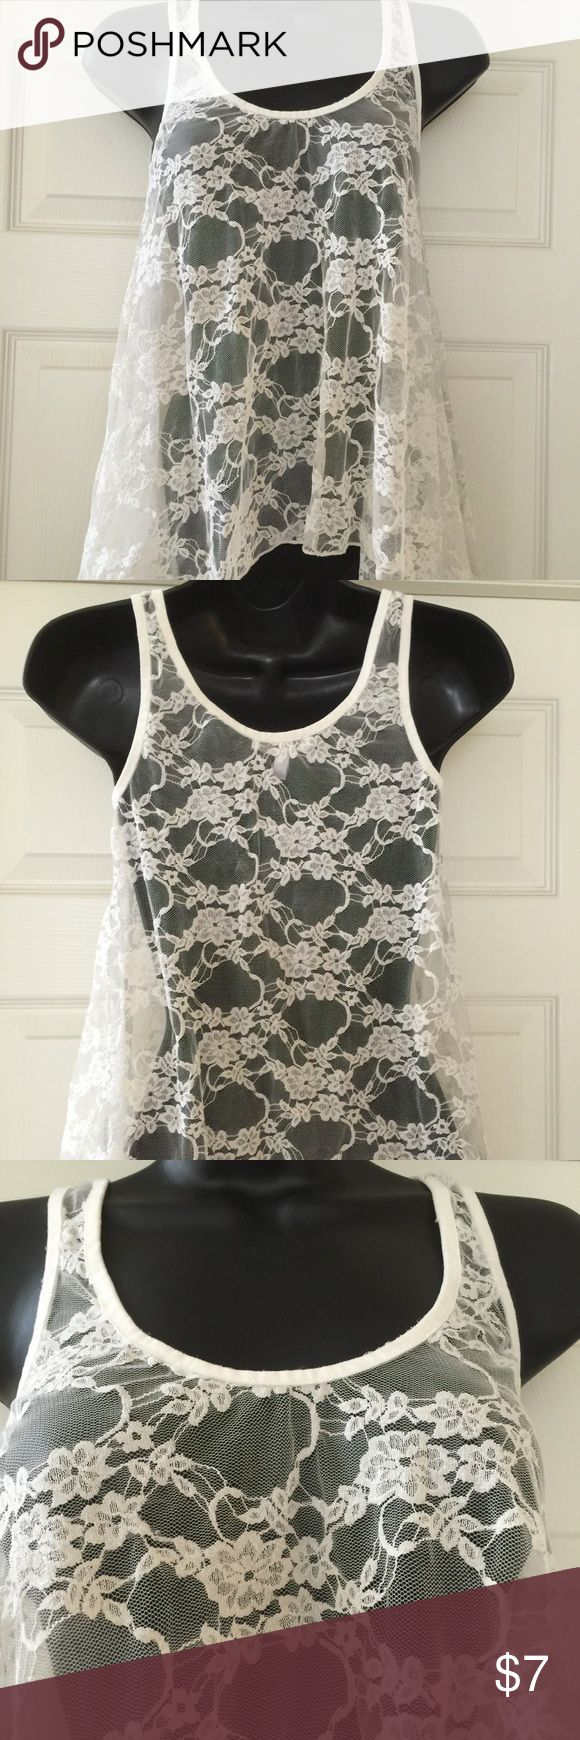 Cream lace top Like new flowy cream lace top delias Tops Blouses